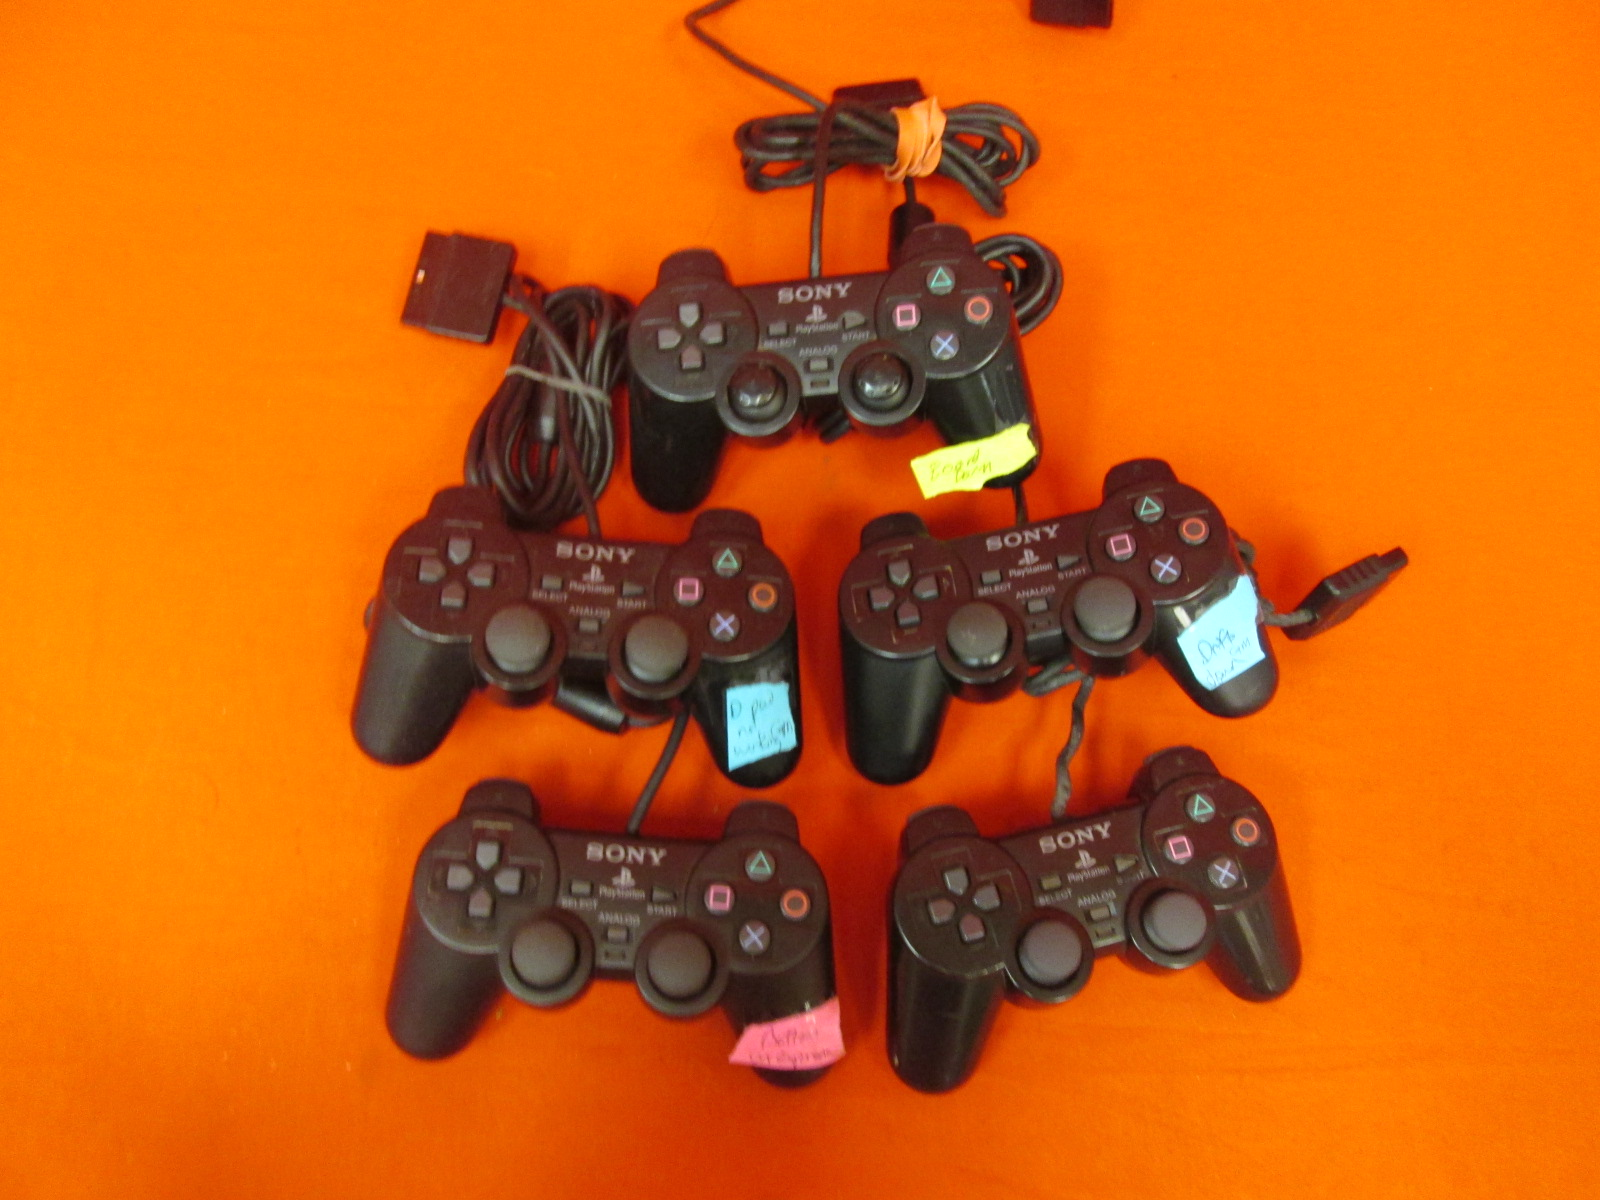 Broken Lot Of 5 Sony Brand Wired Controllers For PlayStation 2